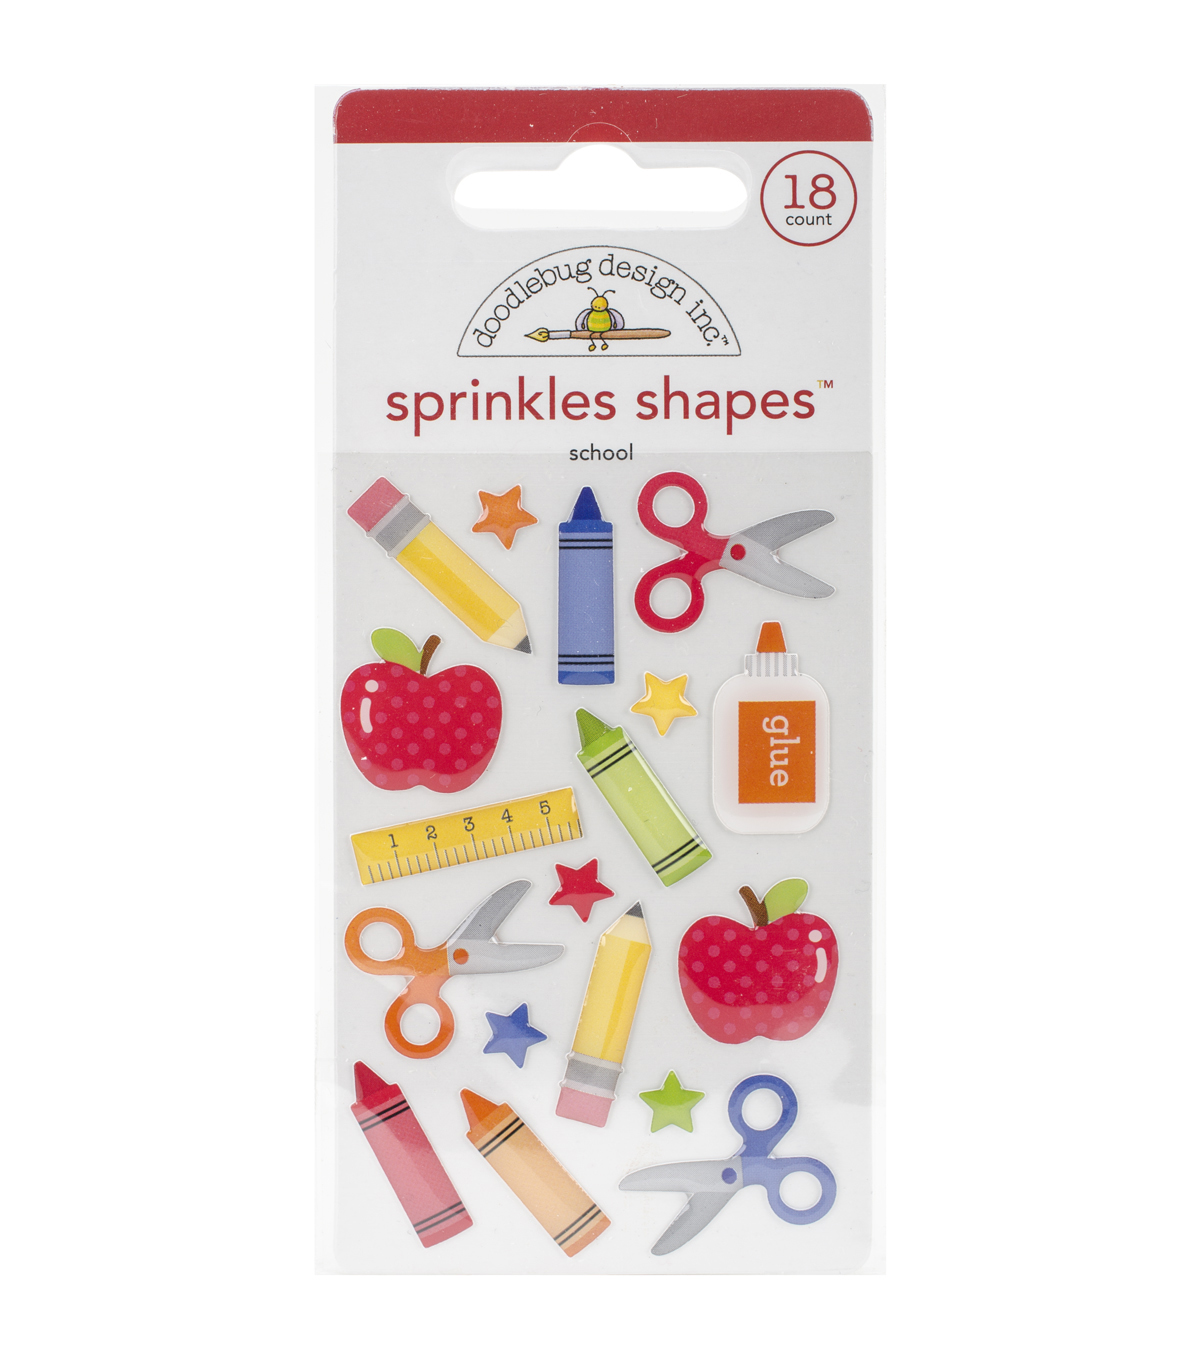 Sch Shapes-school Sprinkl Stckr